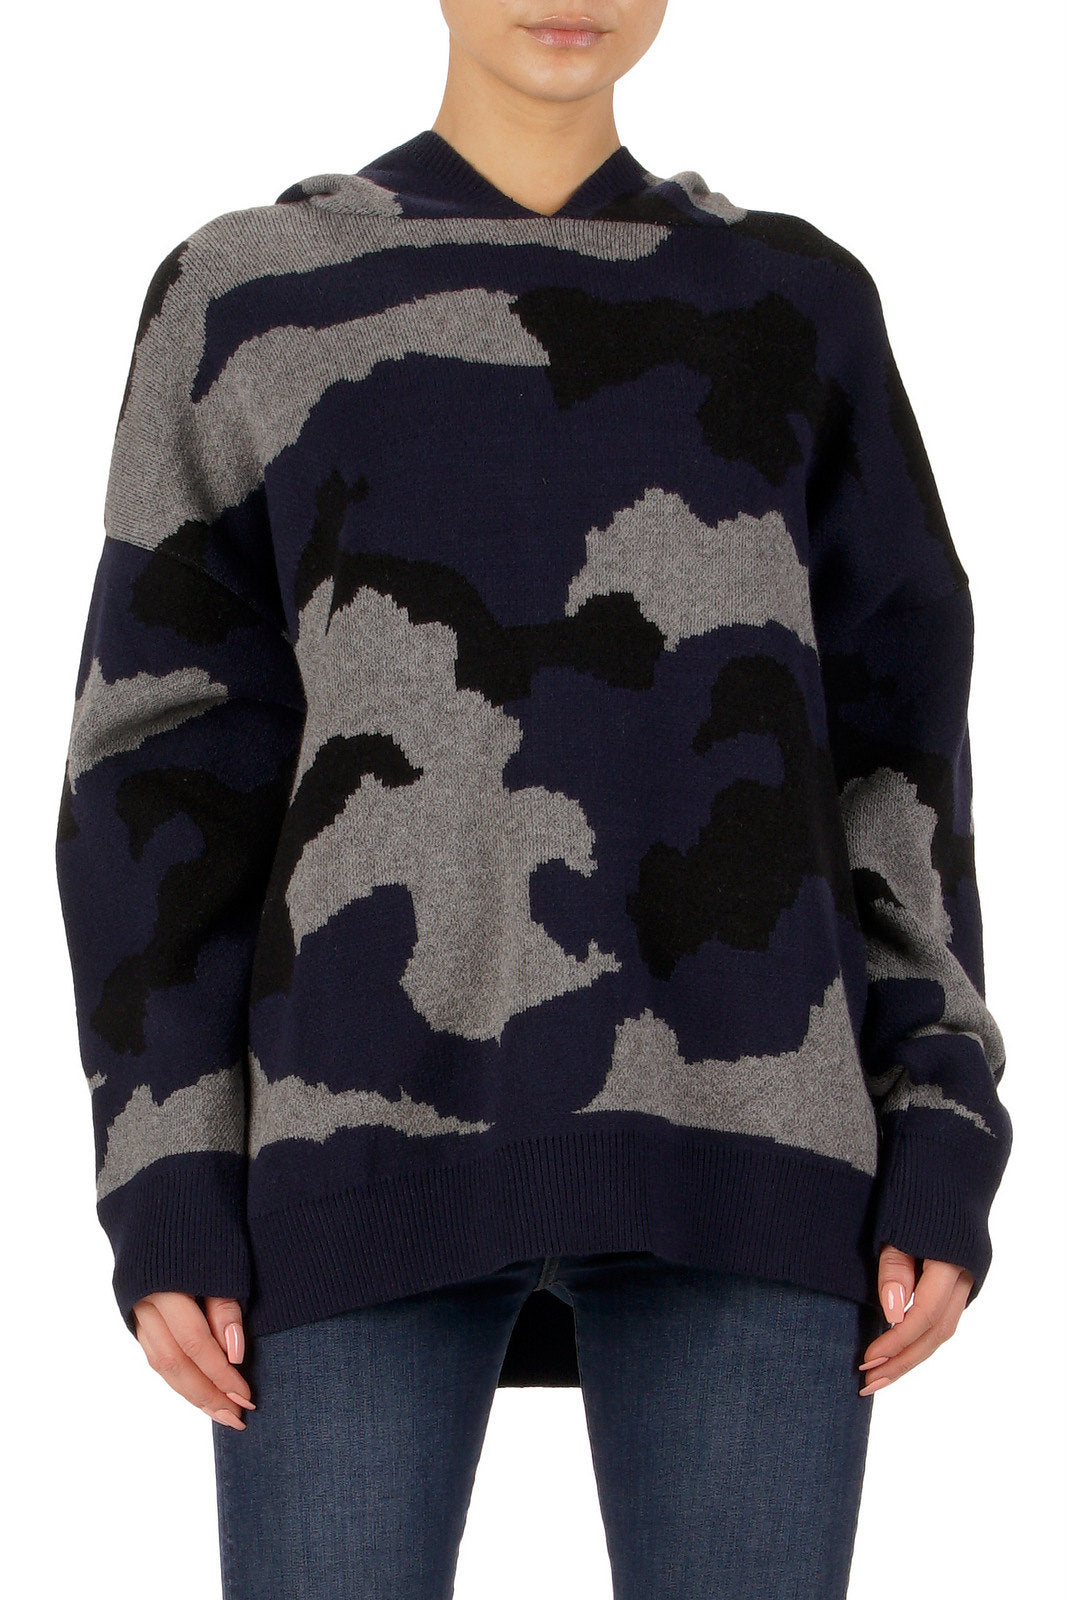 NAVY/BLK HOODED SWEATER